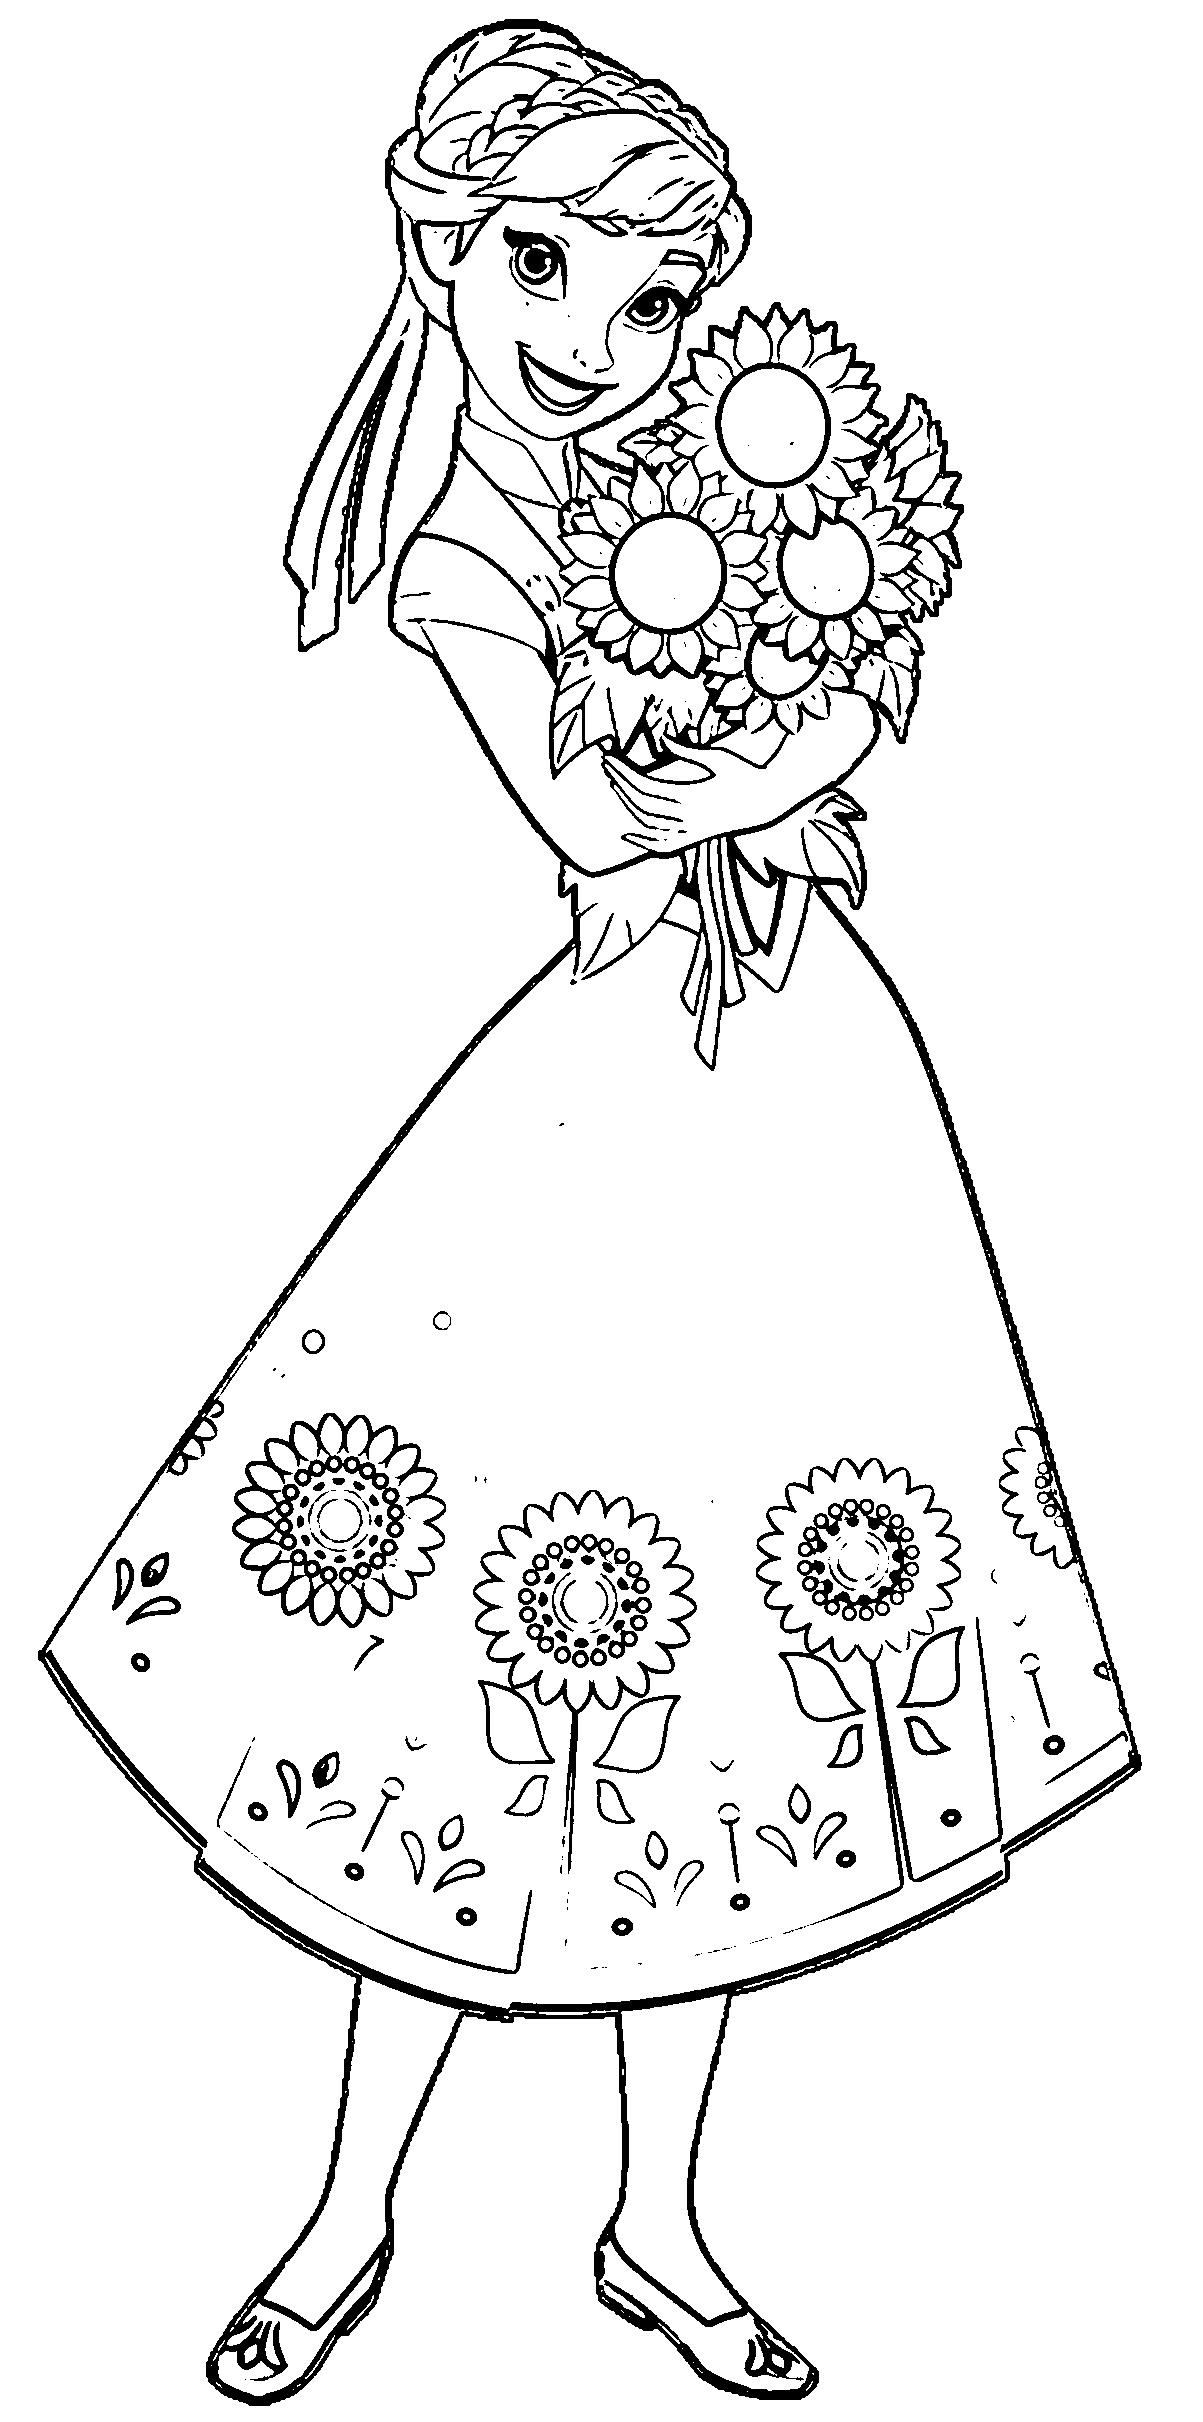 Awesome Frozen Fever Coloring Pages Free Gallery Of Elsa Template Stencil